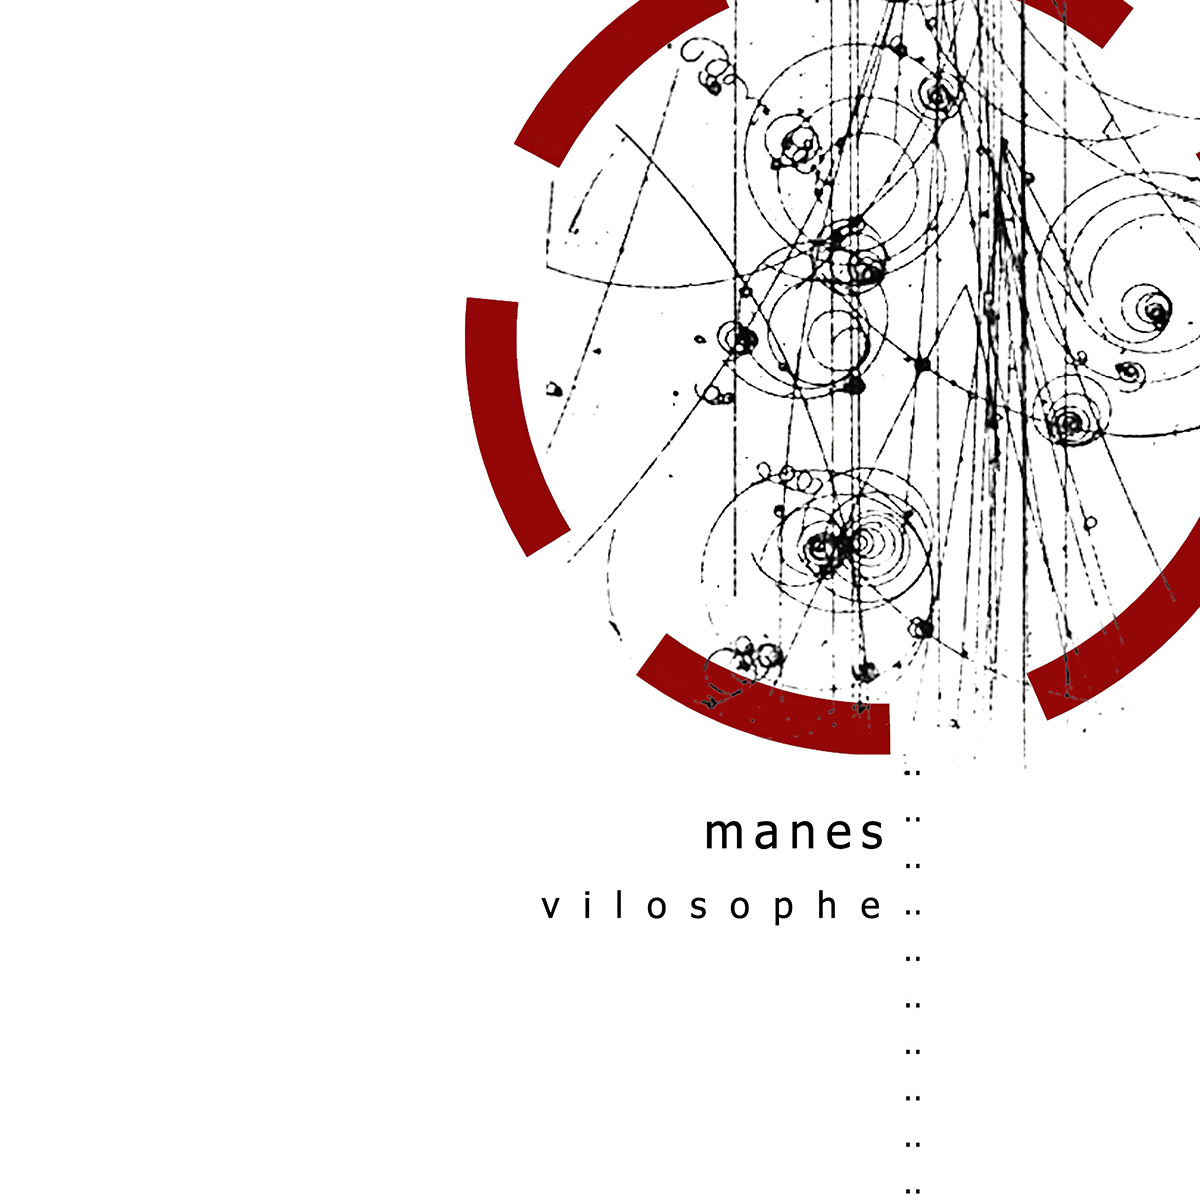 Manes - Vilosophe (album cover)